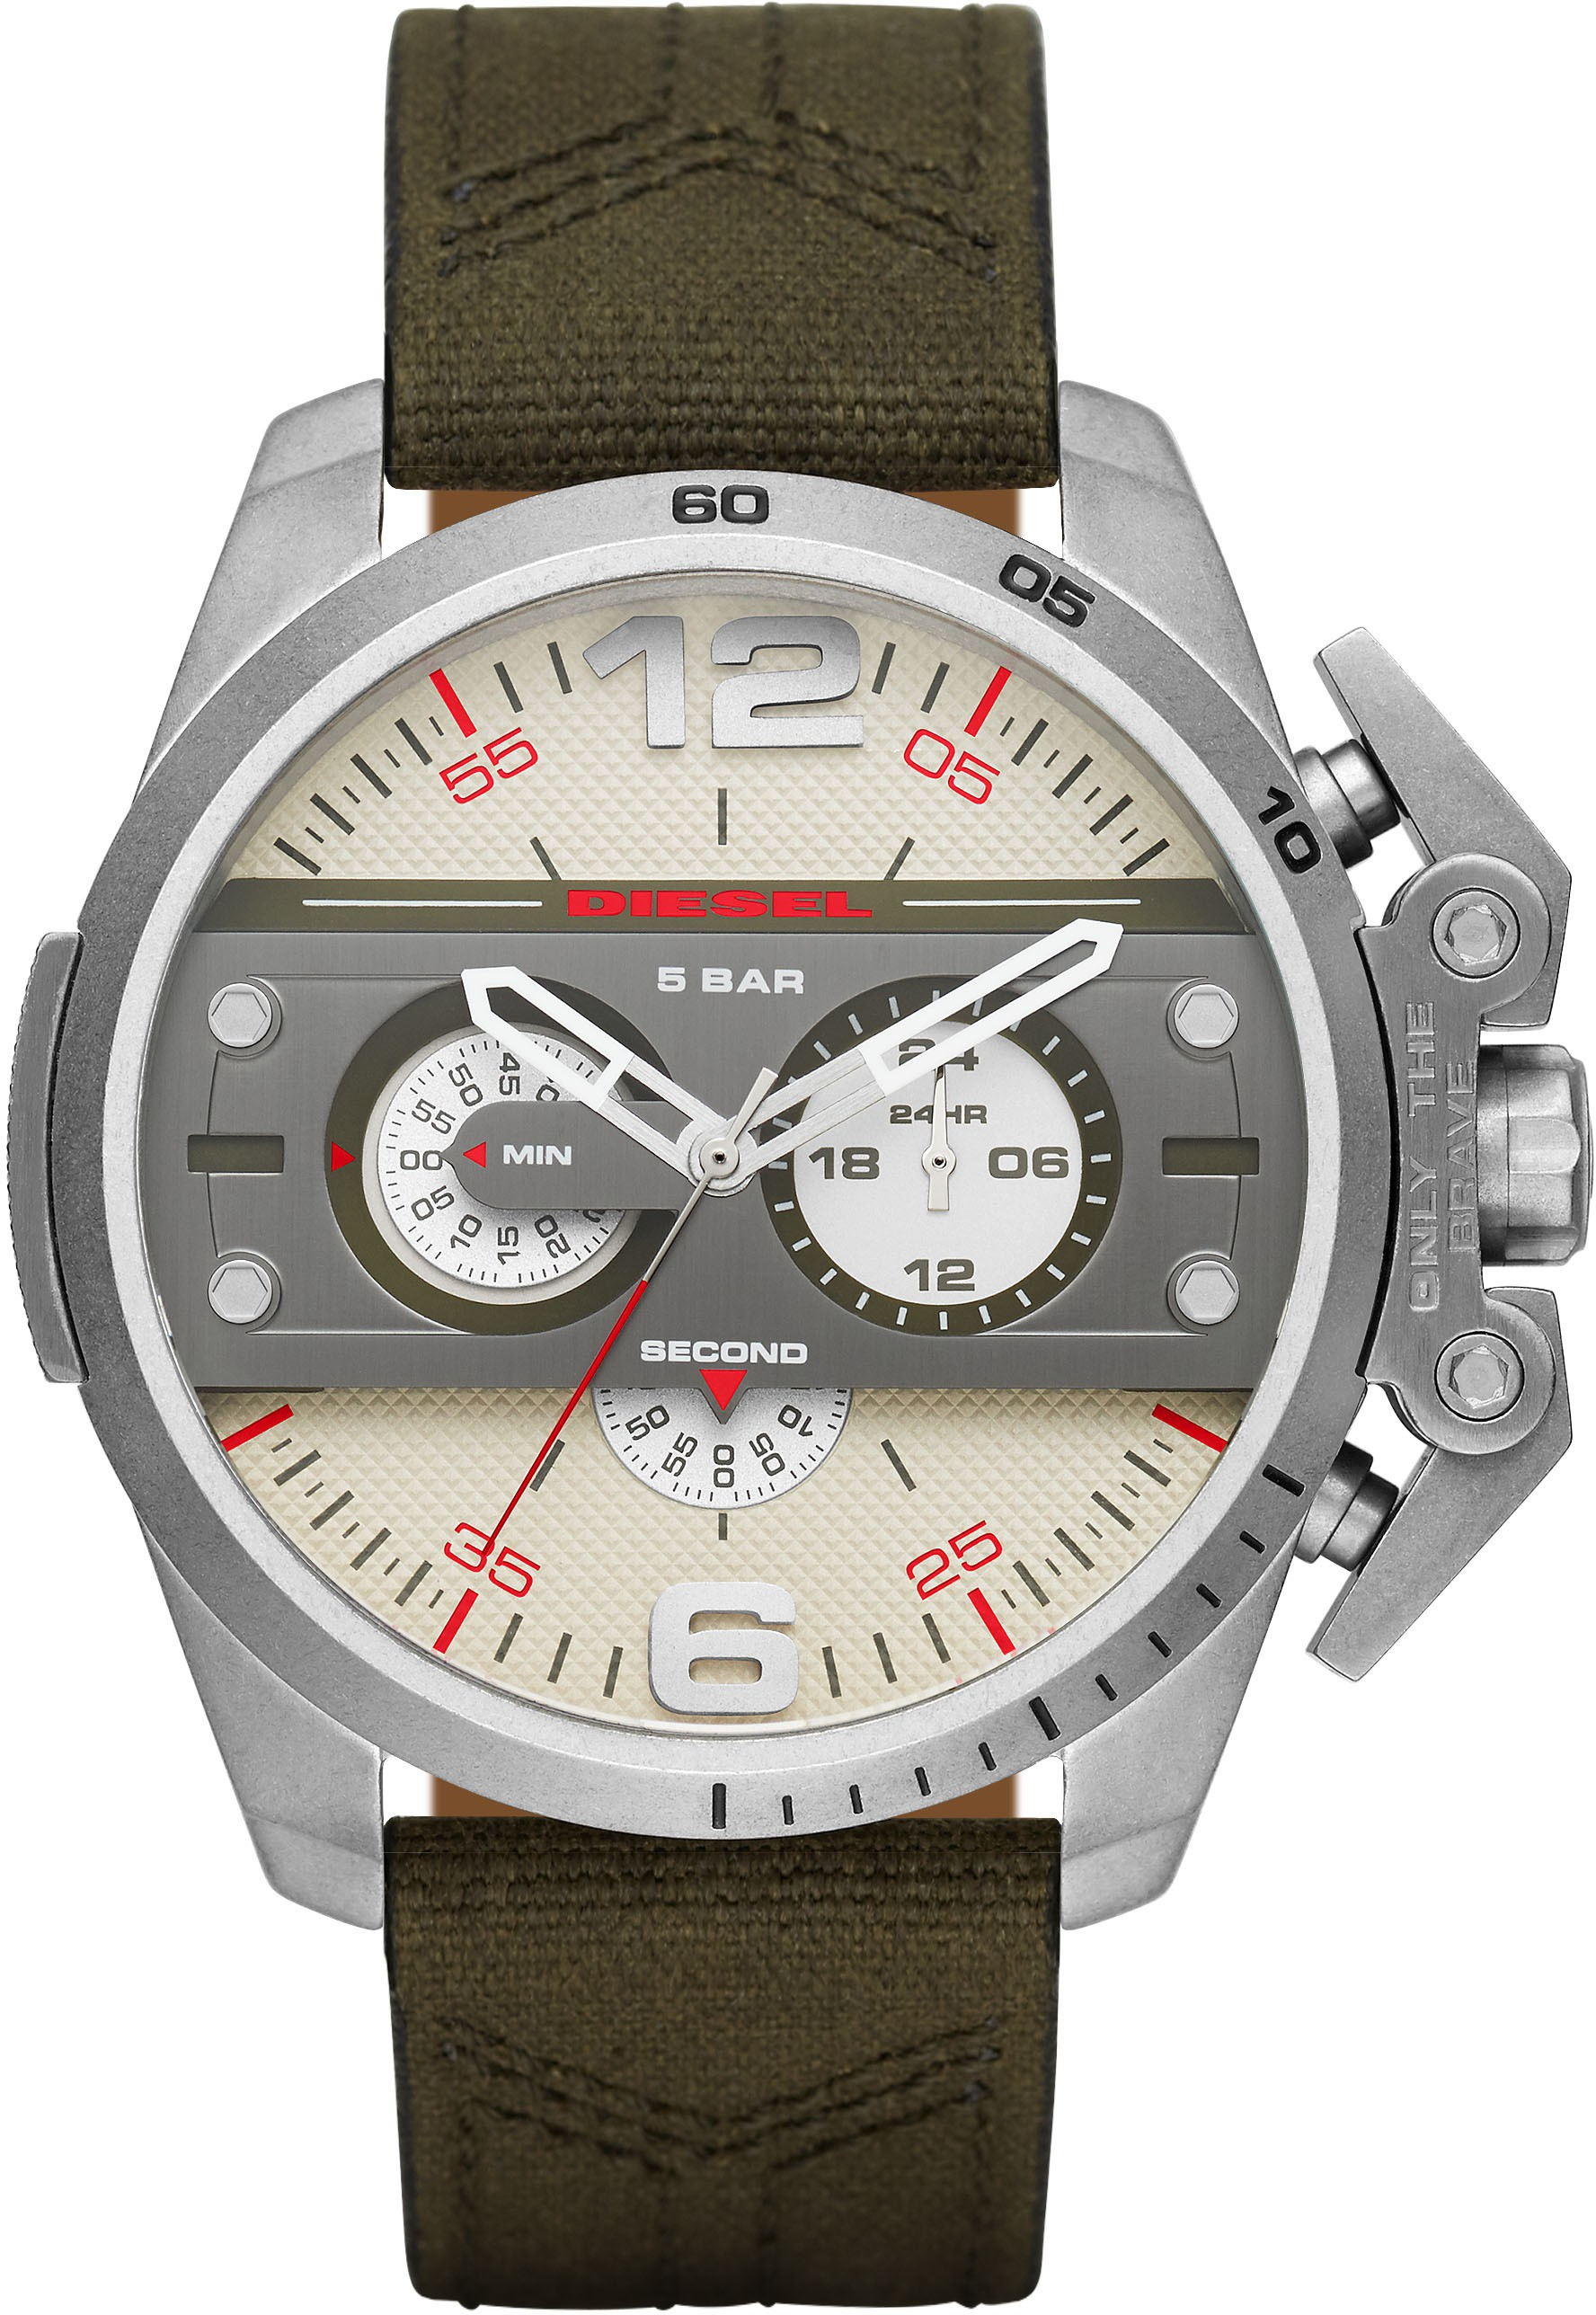 Deals - Delhi - Fossil, Diesel... <br> Watches<br> Category - watches<br> Business - Flipkart.com